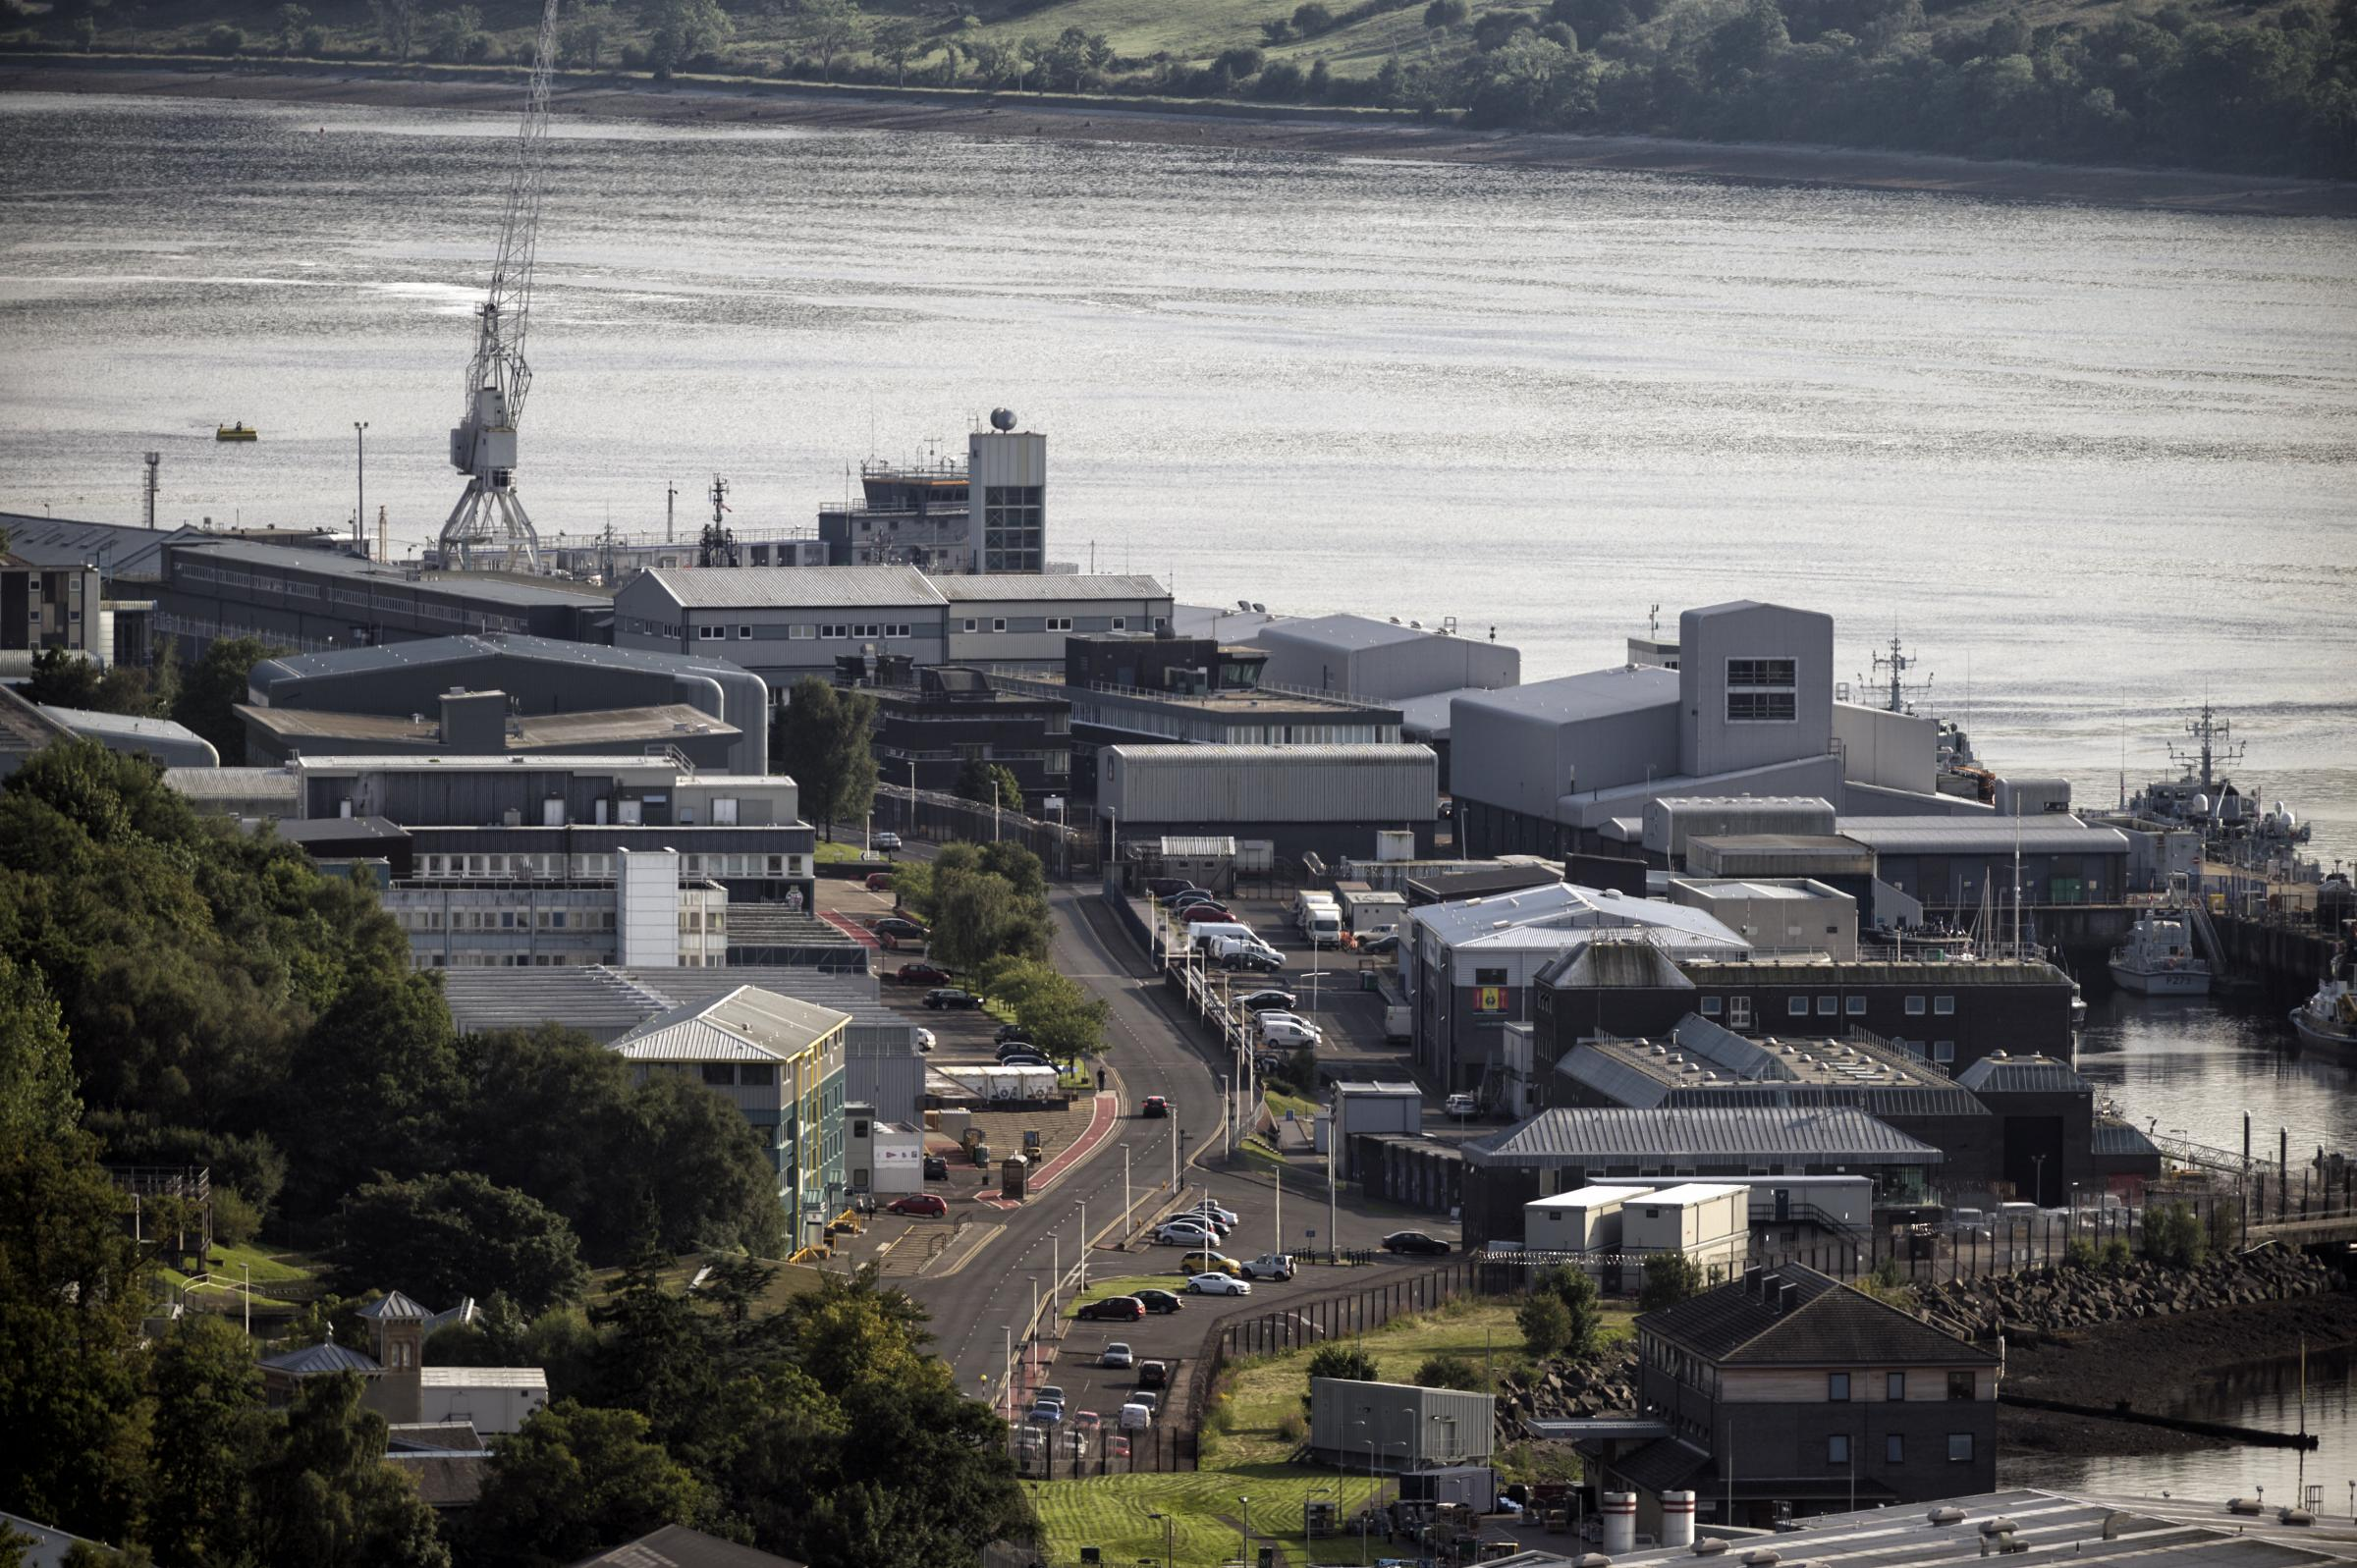 FASLANE, SCOTLAND - AUGUST 17: a general view of HMNB Clyde also known as Faslane on August 17, 2016 in Faslane, Scotland. HM Naval Base Clyde – commonly known throughout the Navy as Faslane – is the Royal Navy's main presence in Scotland. It is hom